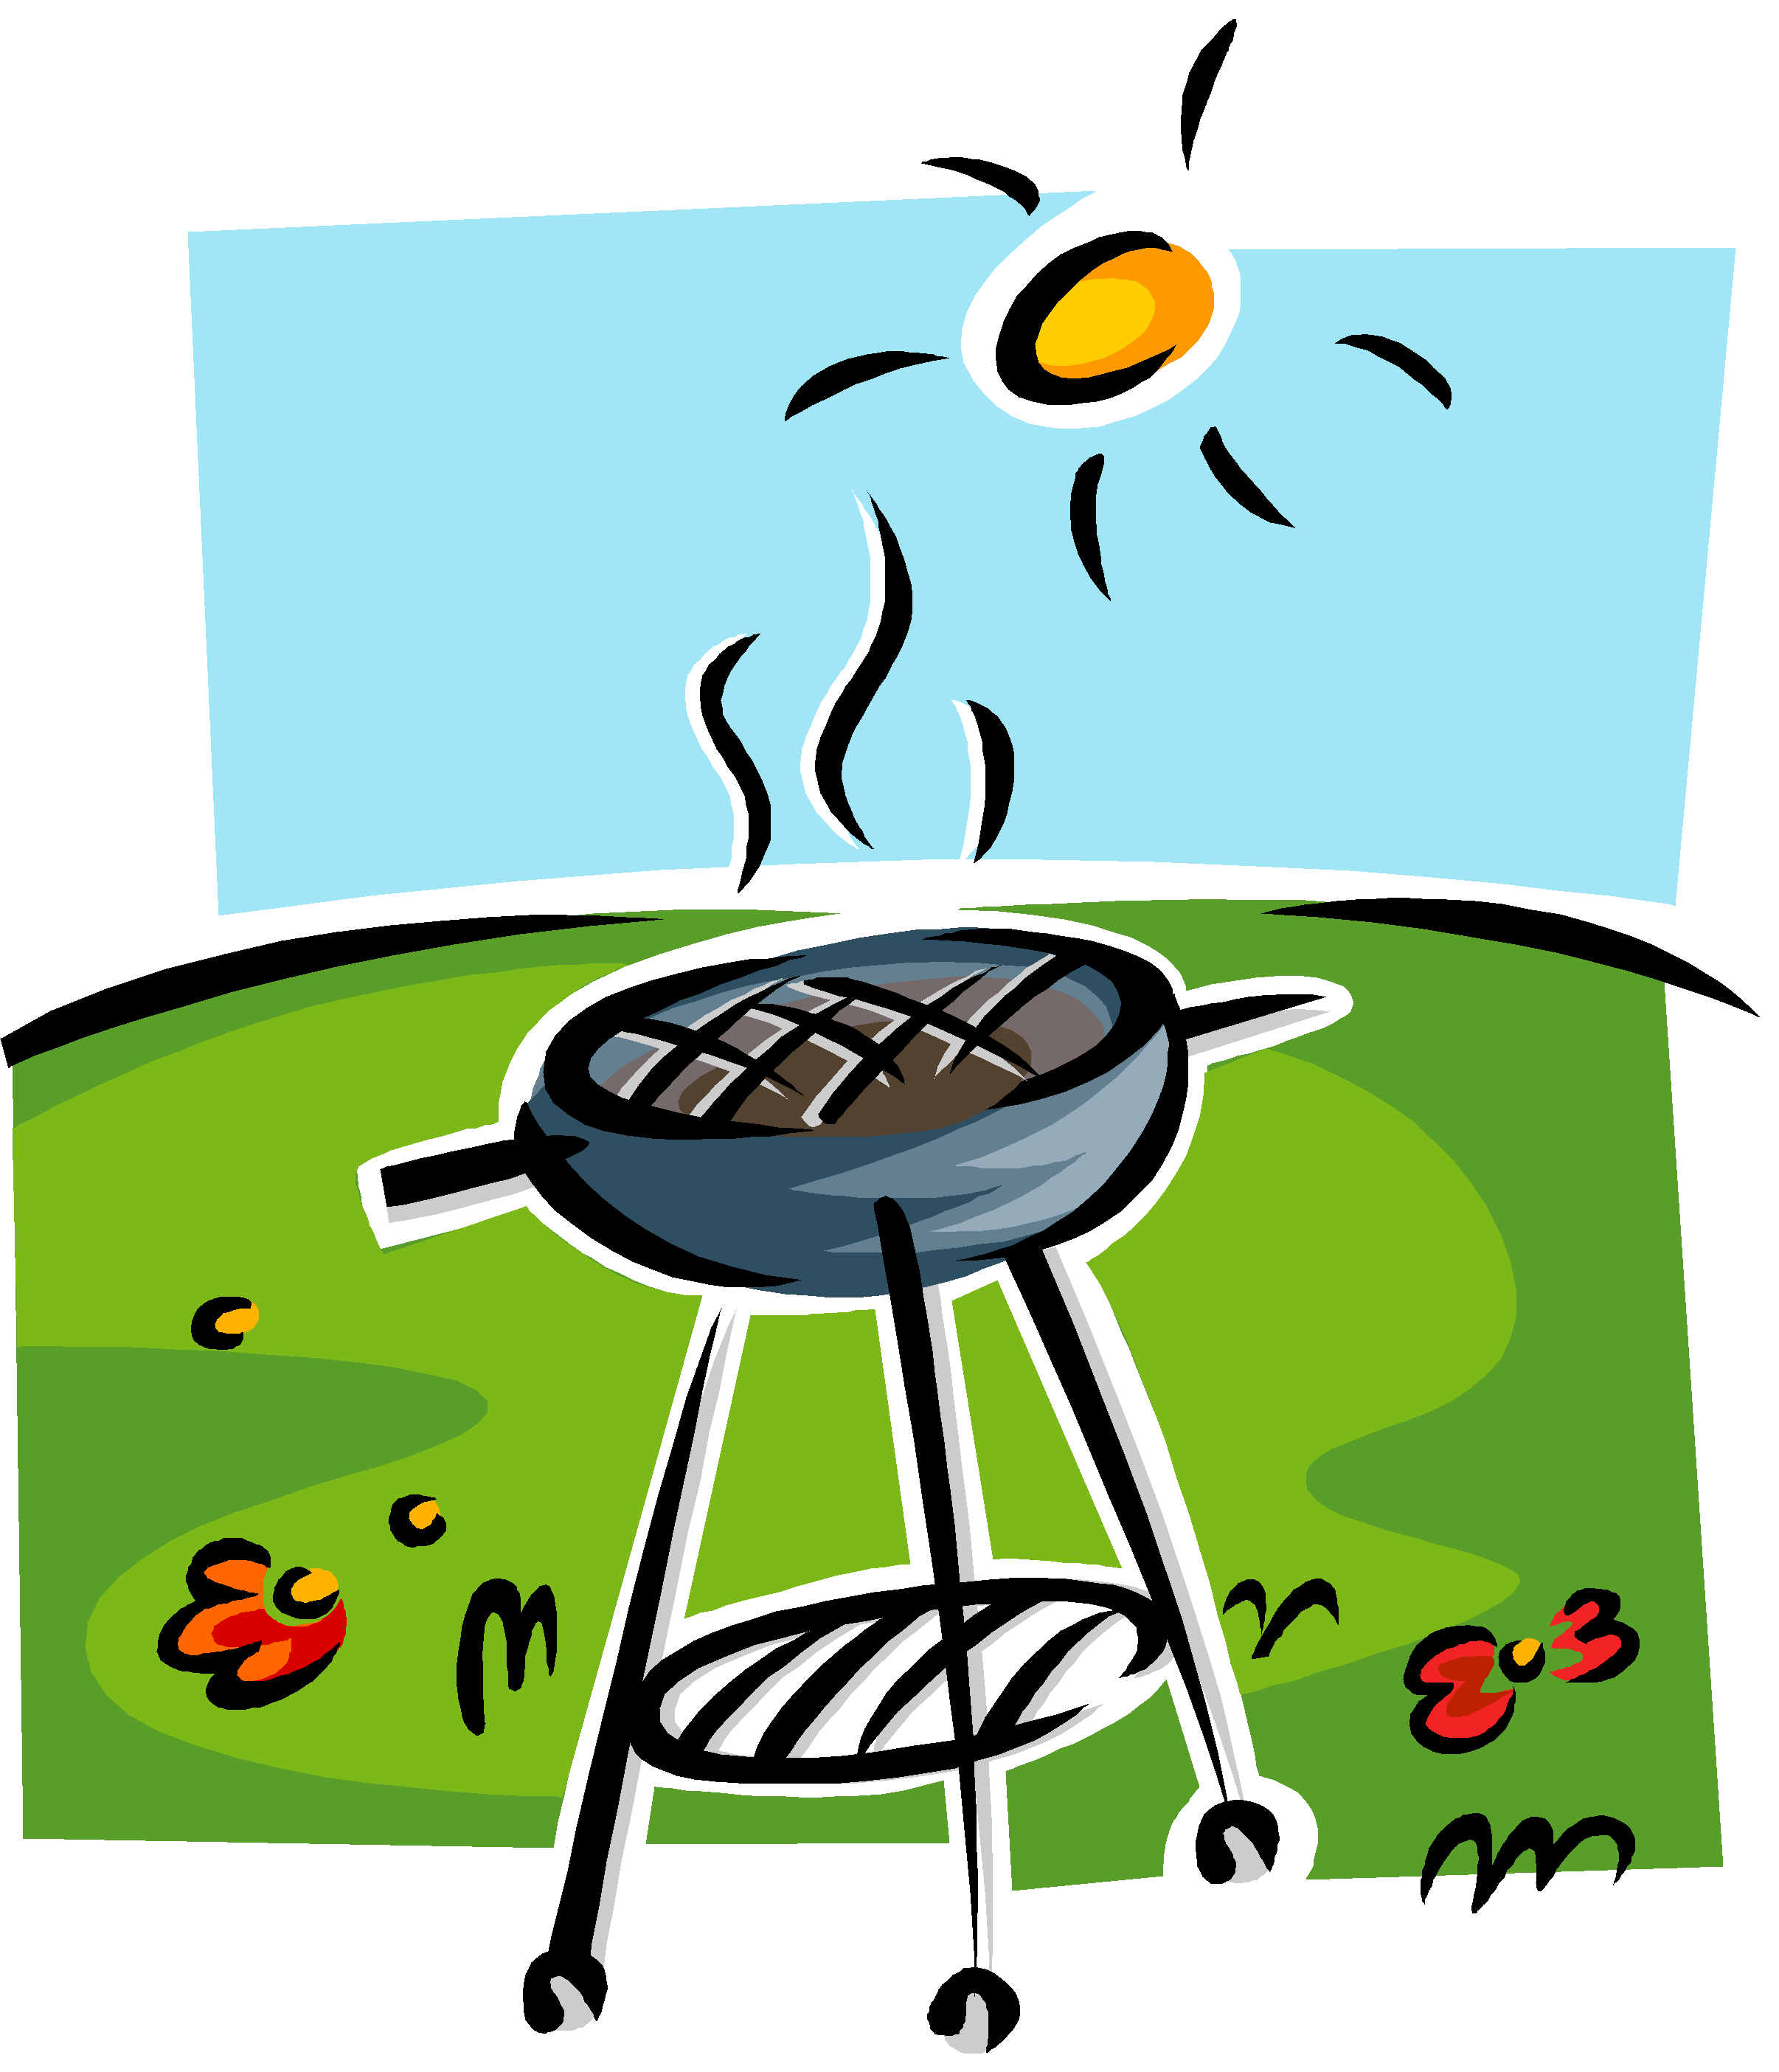 Grill clipart outdoor grill. Bbq drawing at getdrawings